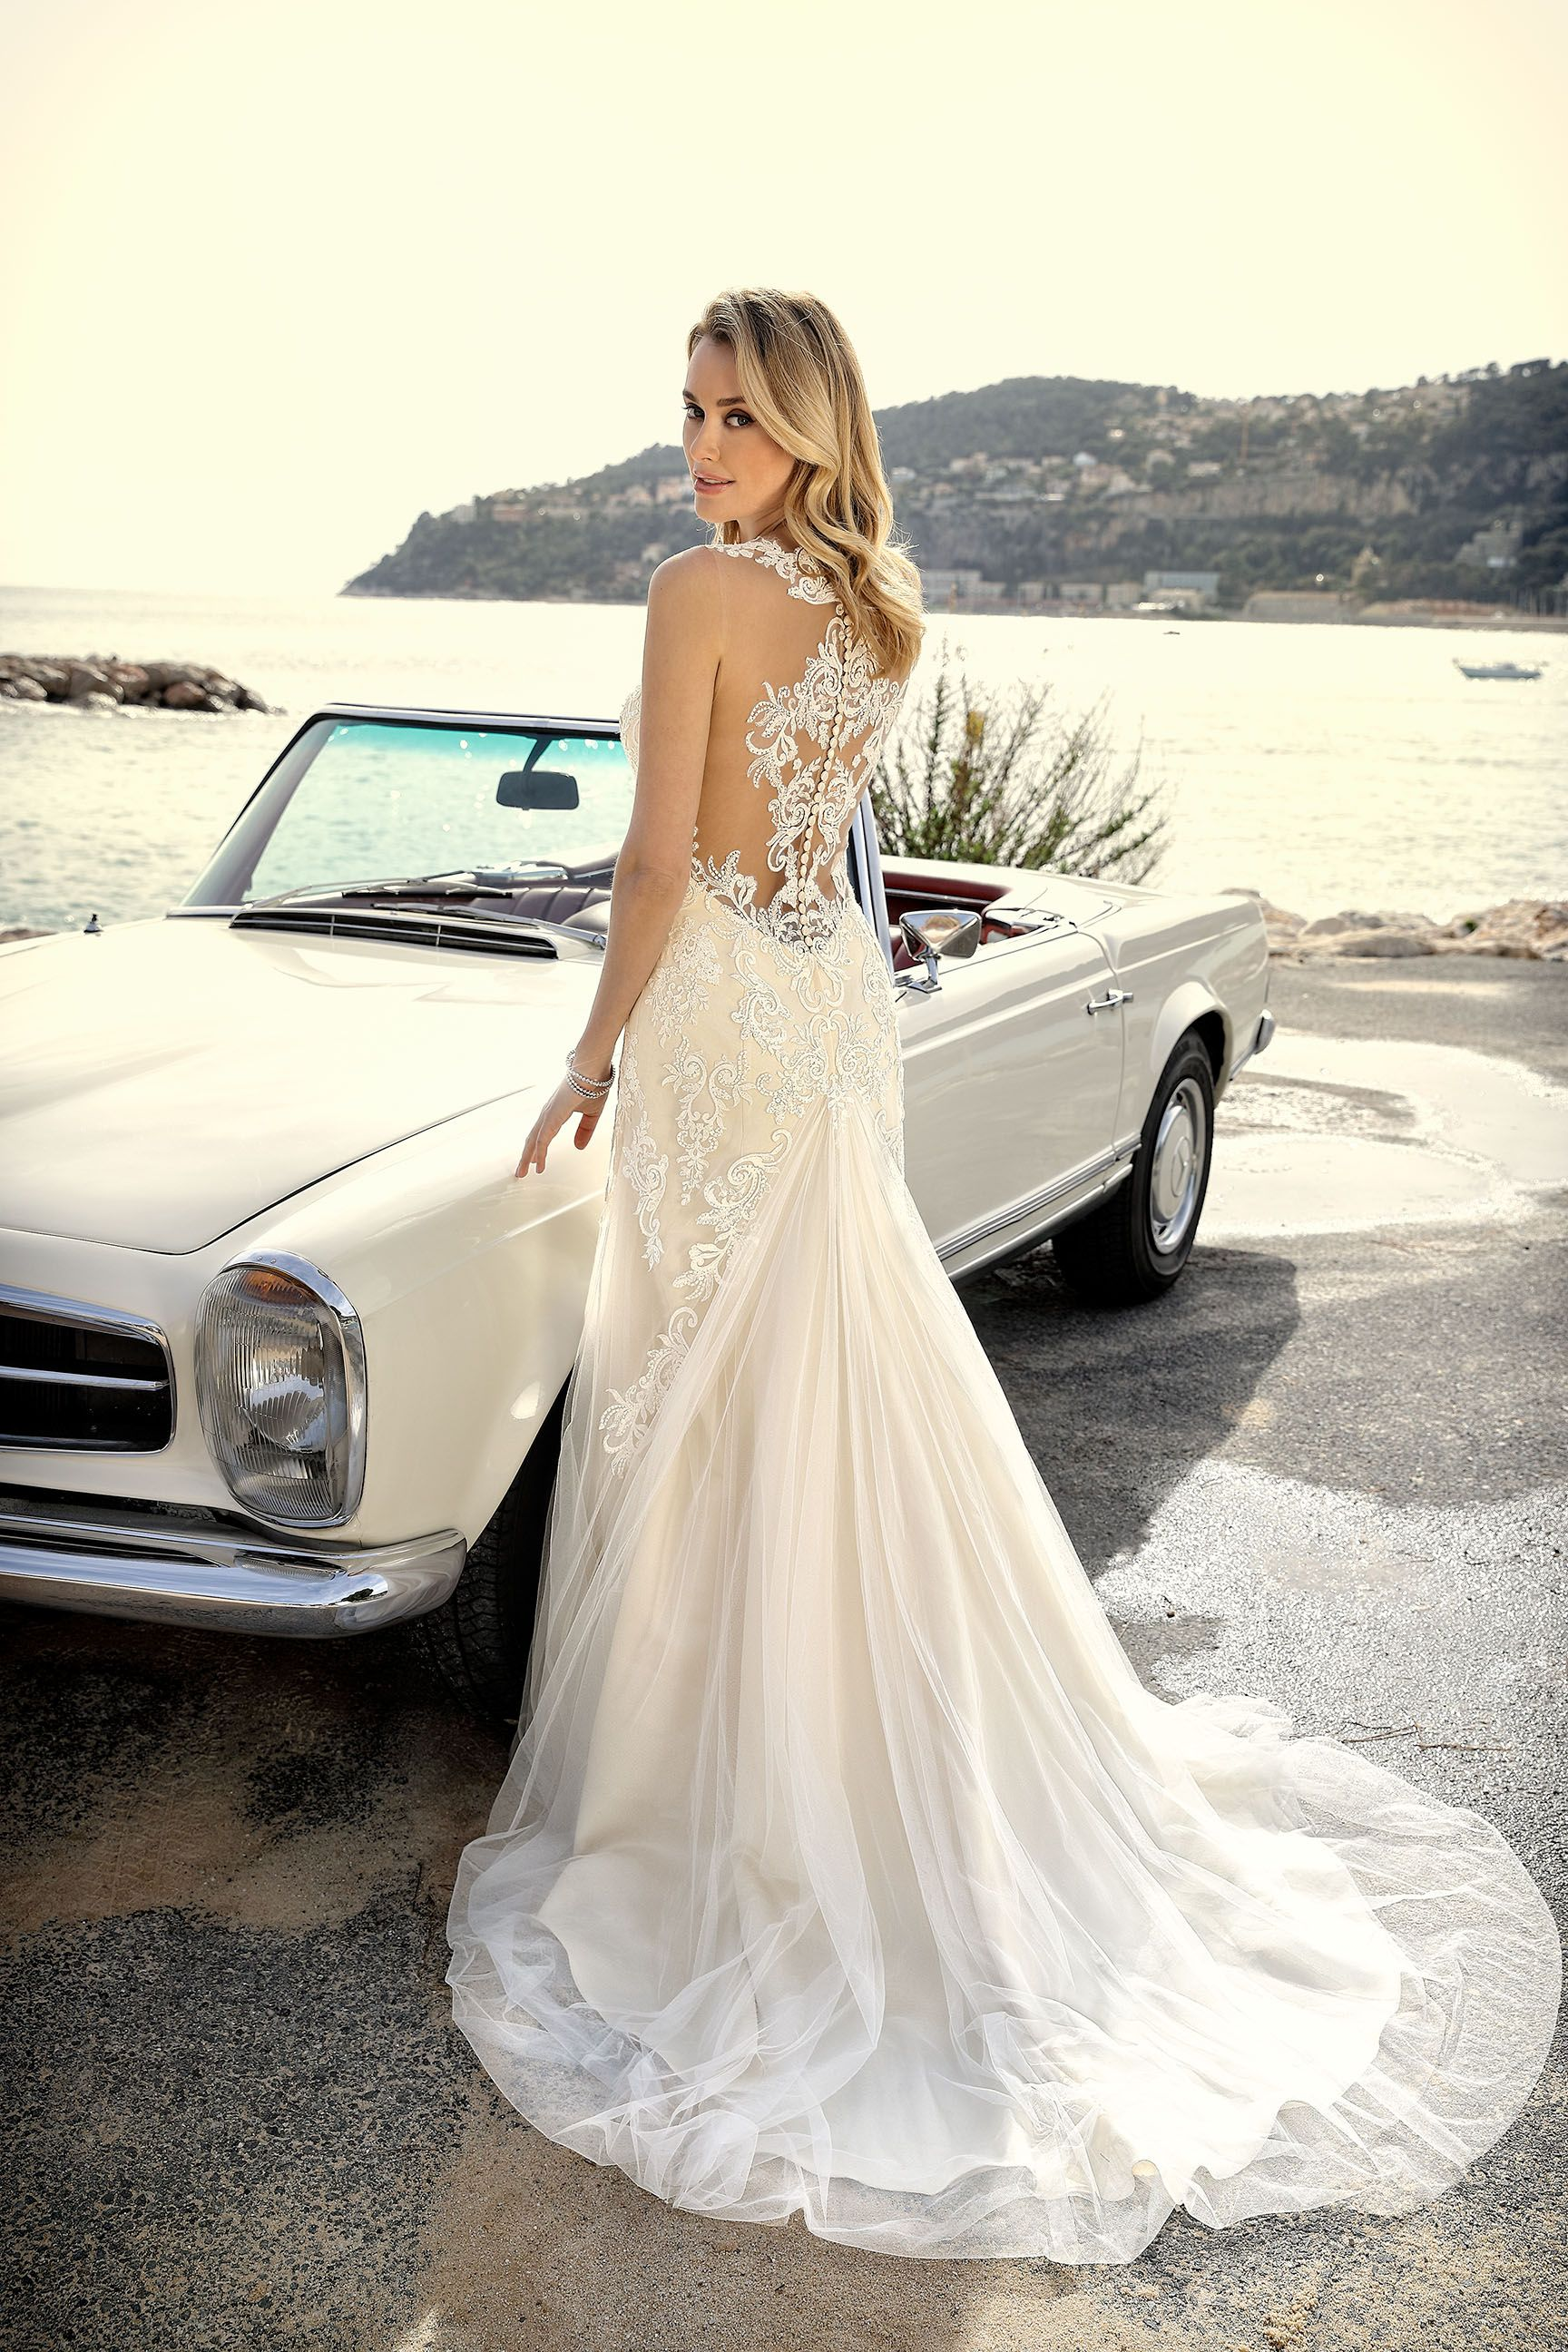 Style new collection wedding dresses ladybird